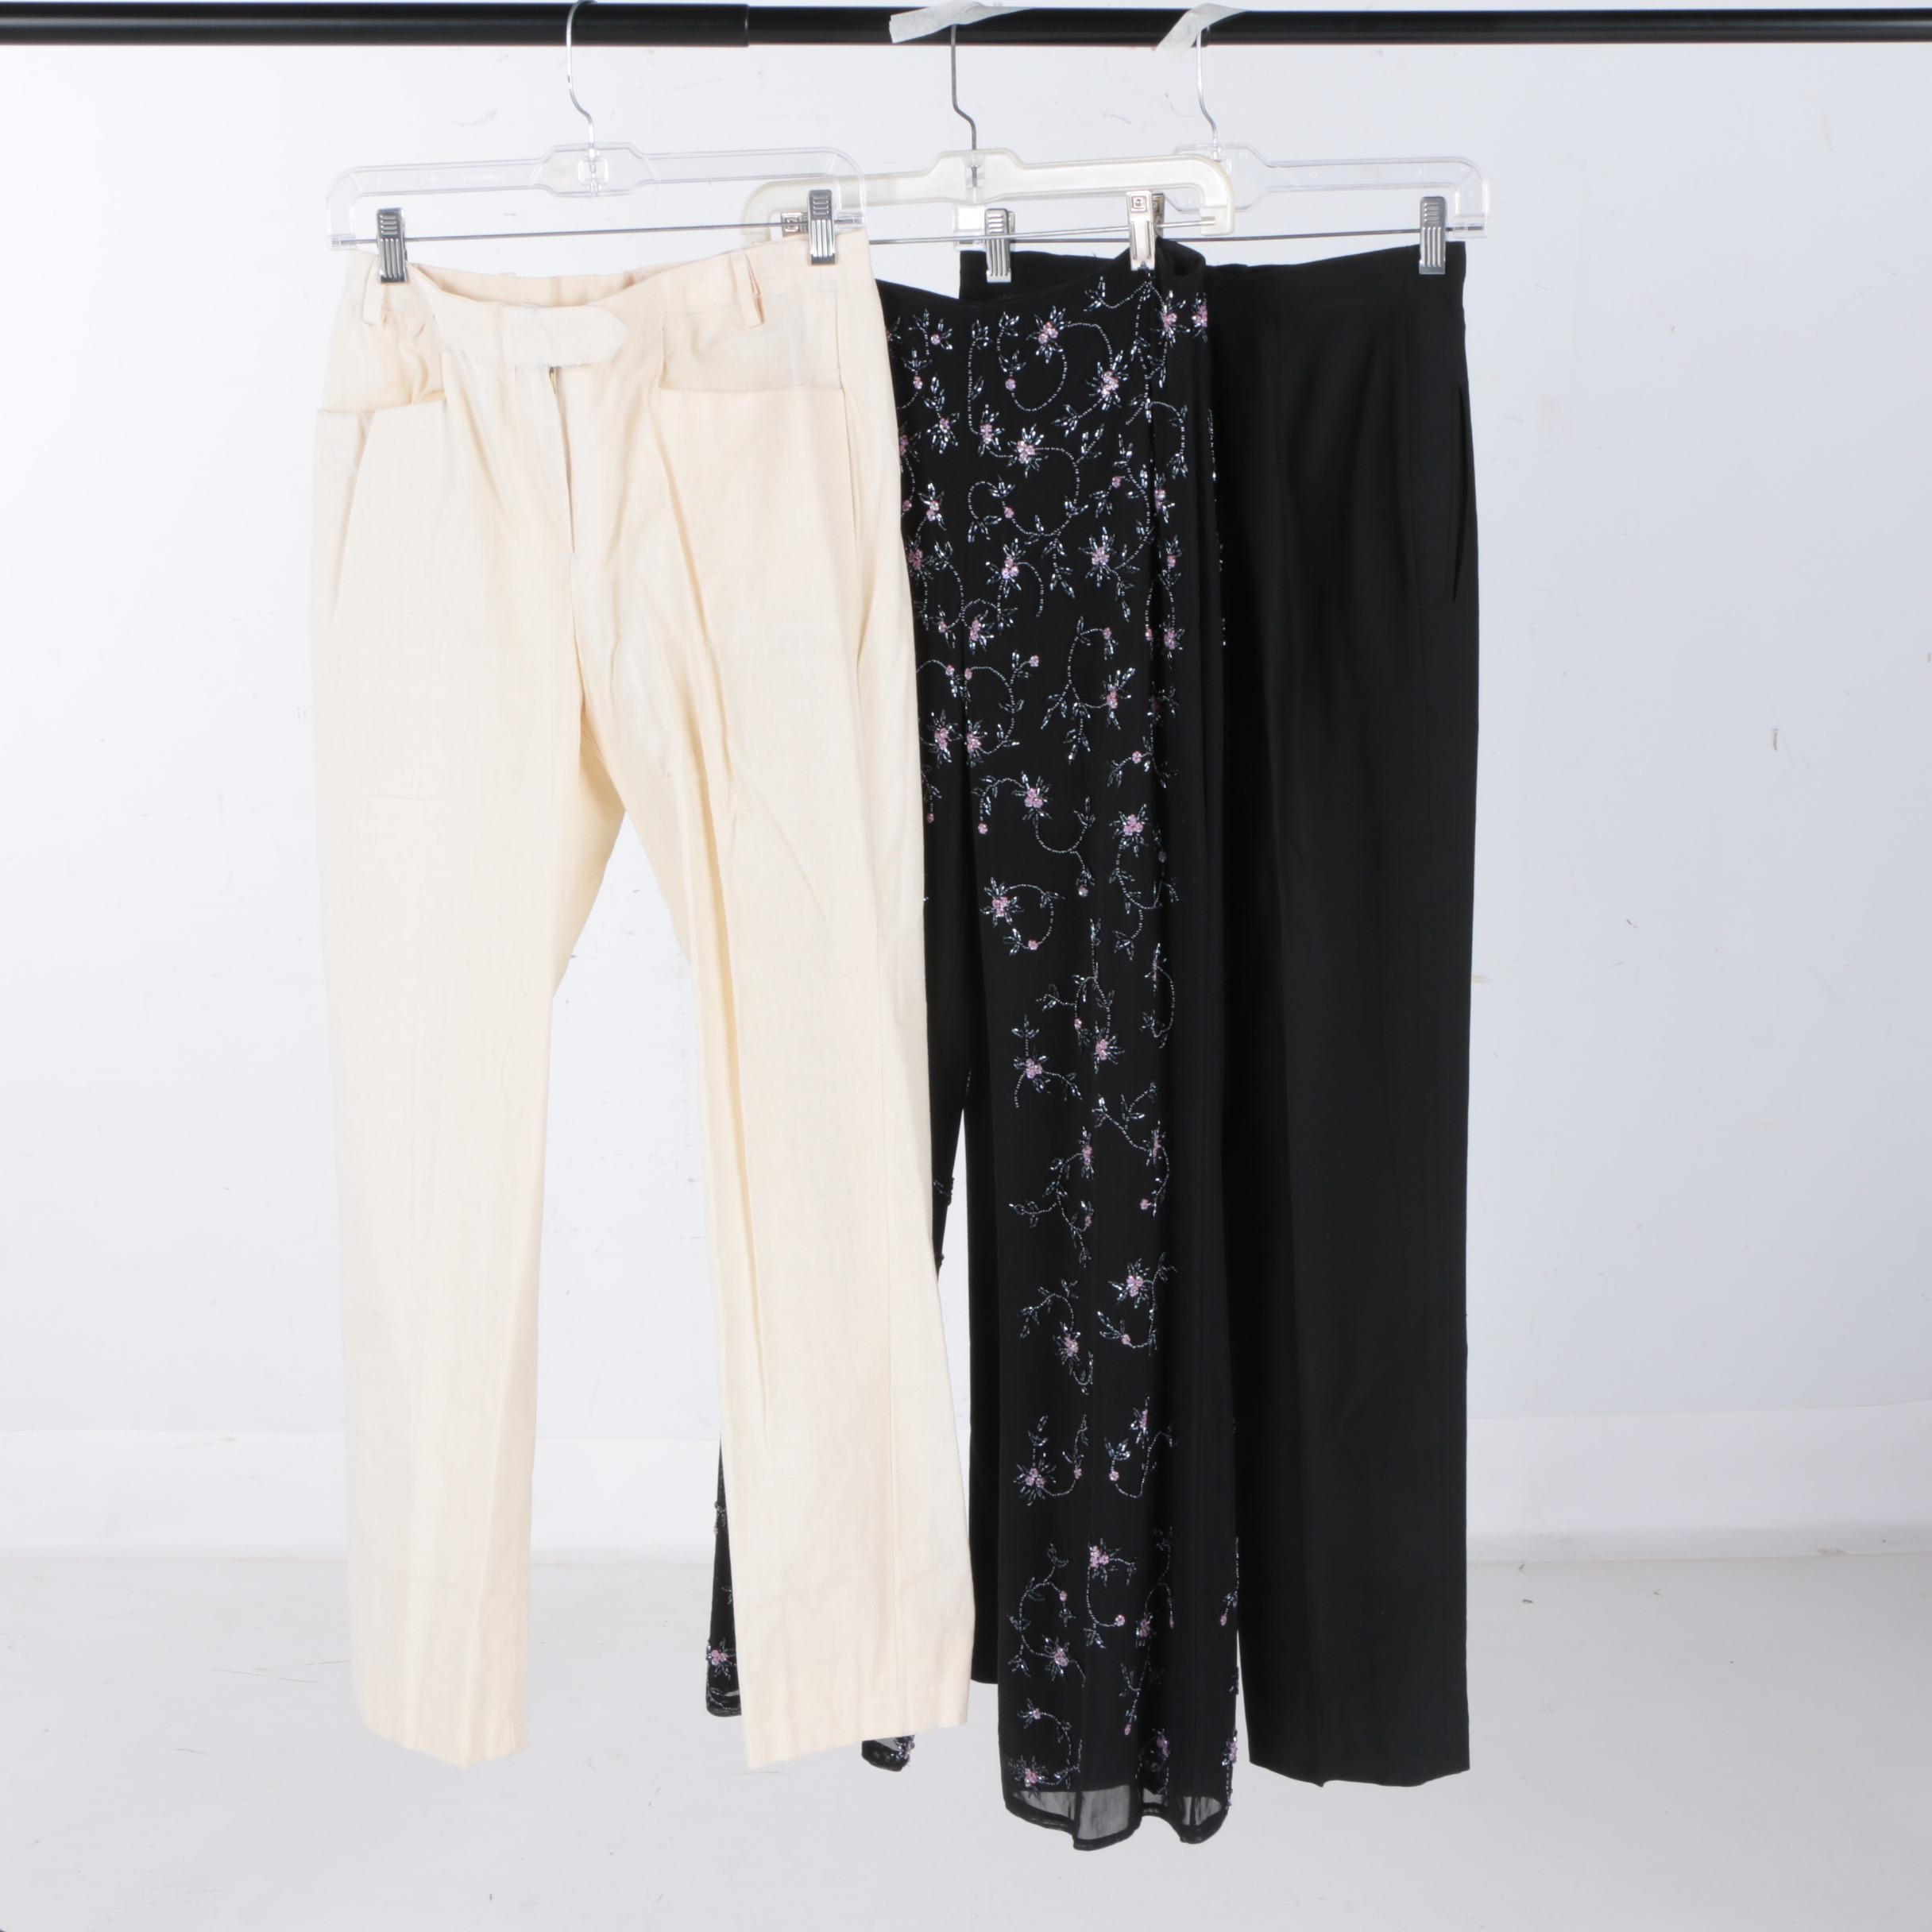 Woman's Pants Including Laundry and Gianfranco ferrre